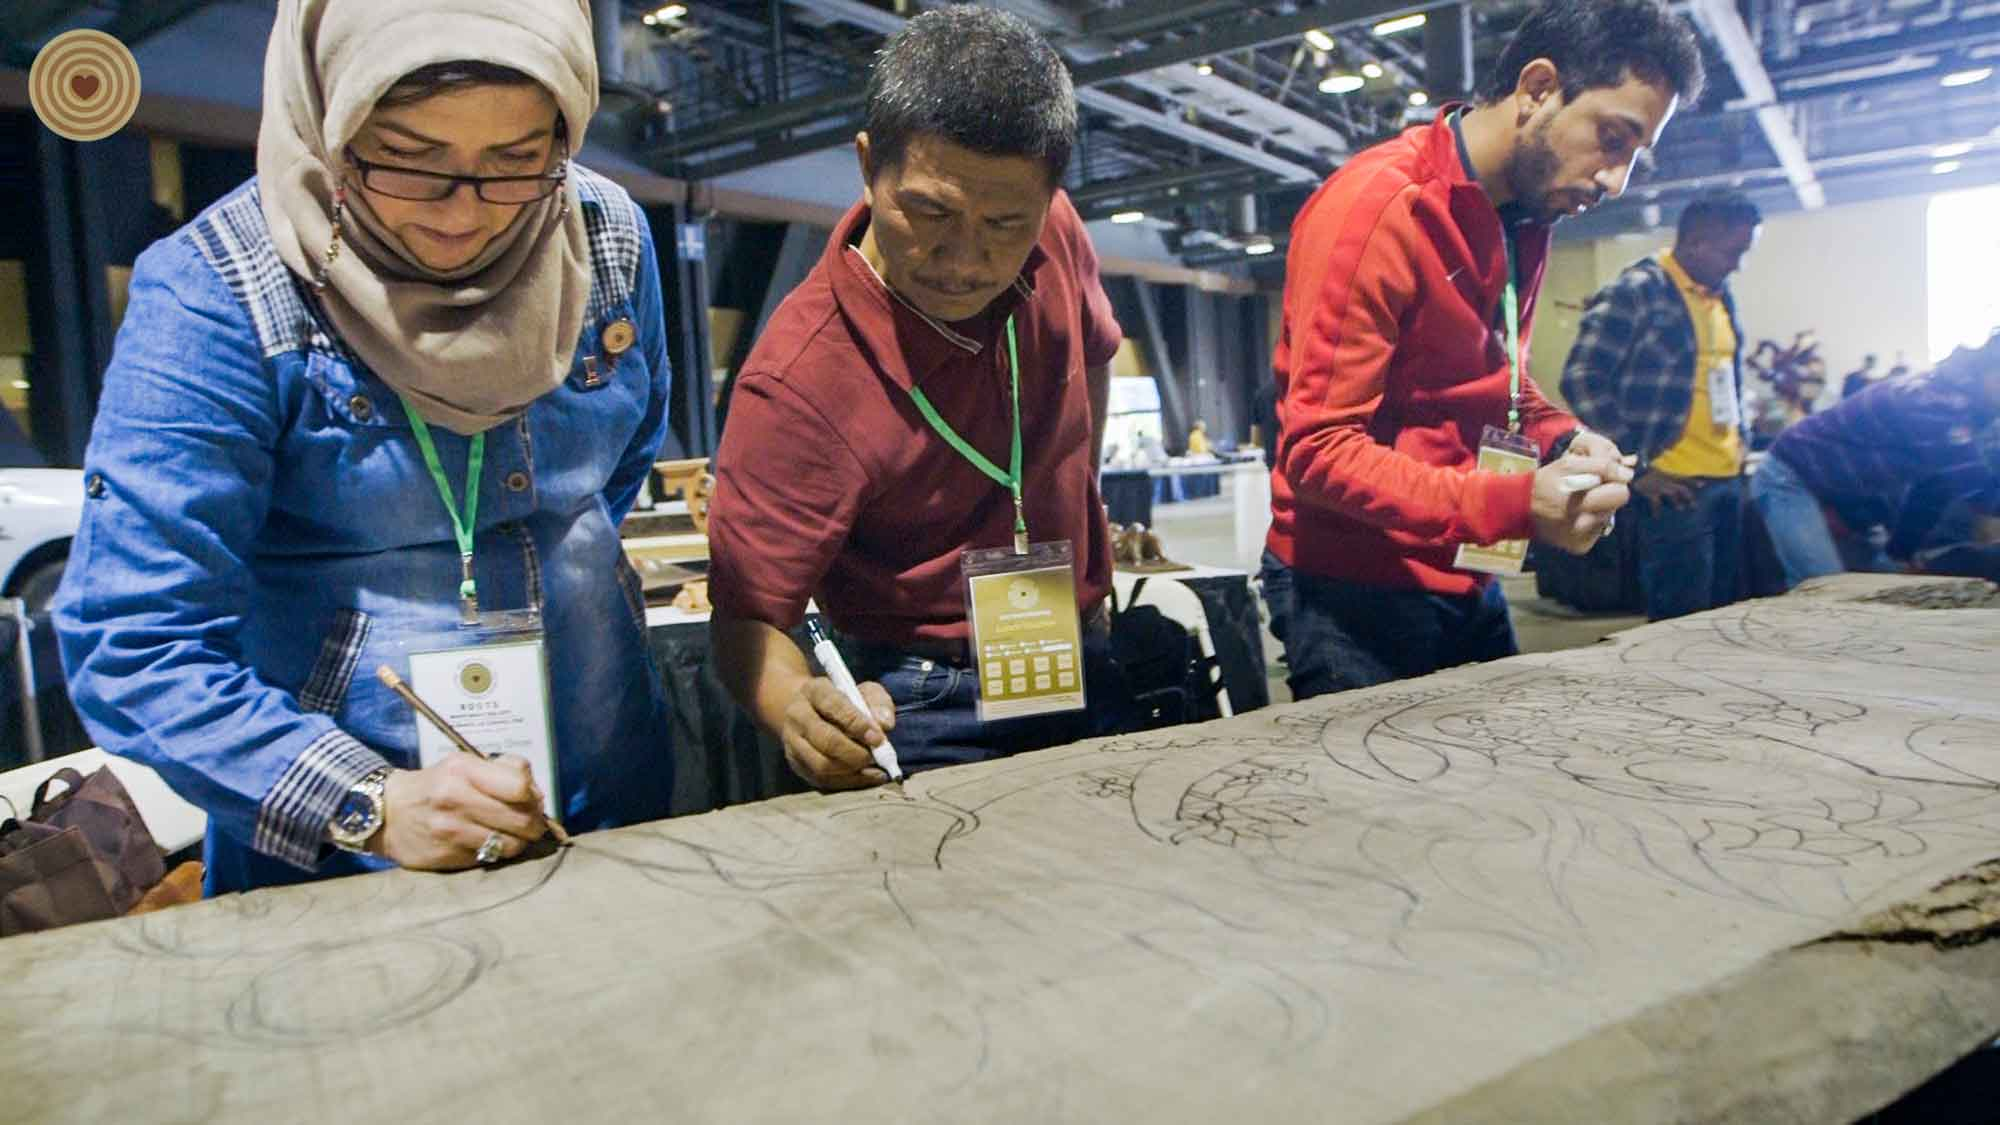 group discussion, wood carving